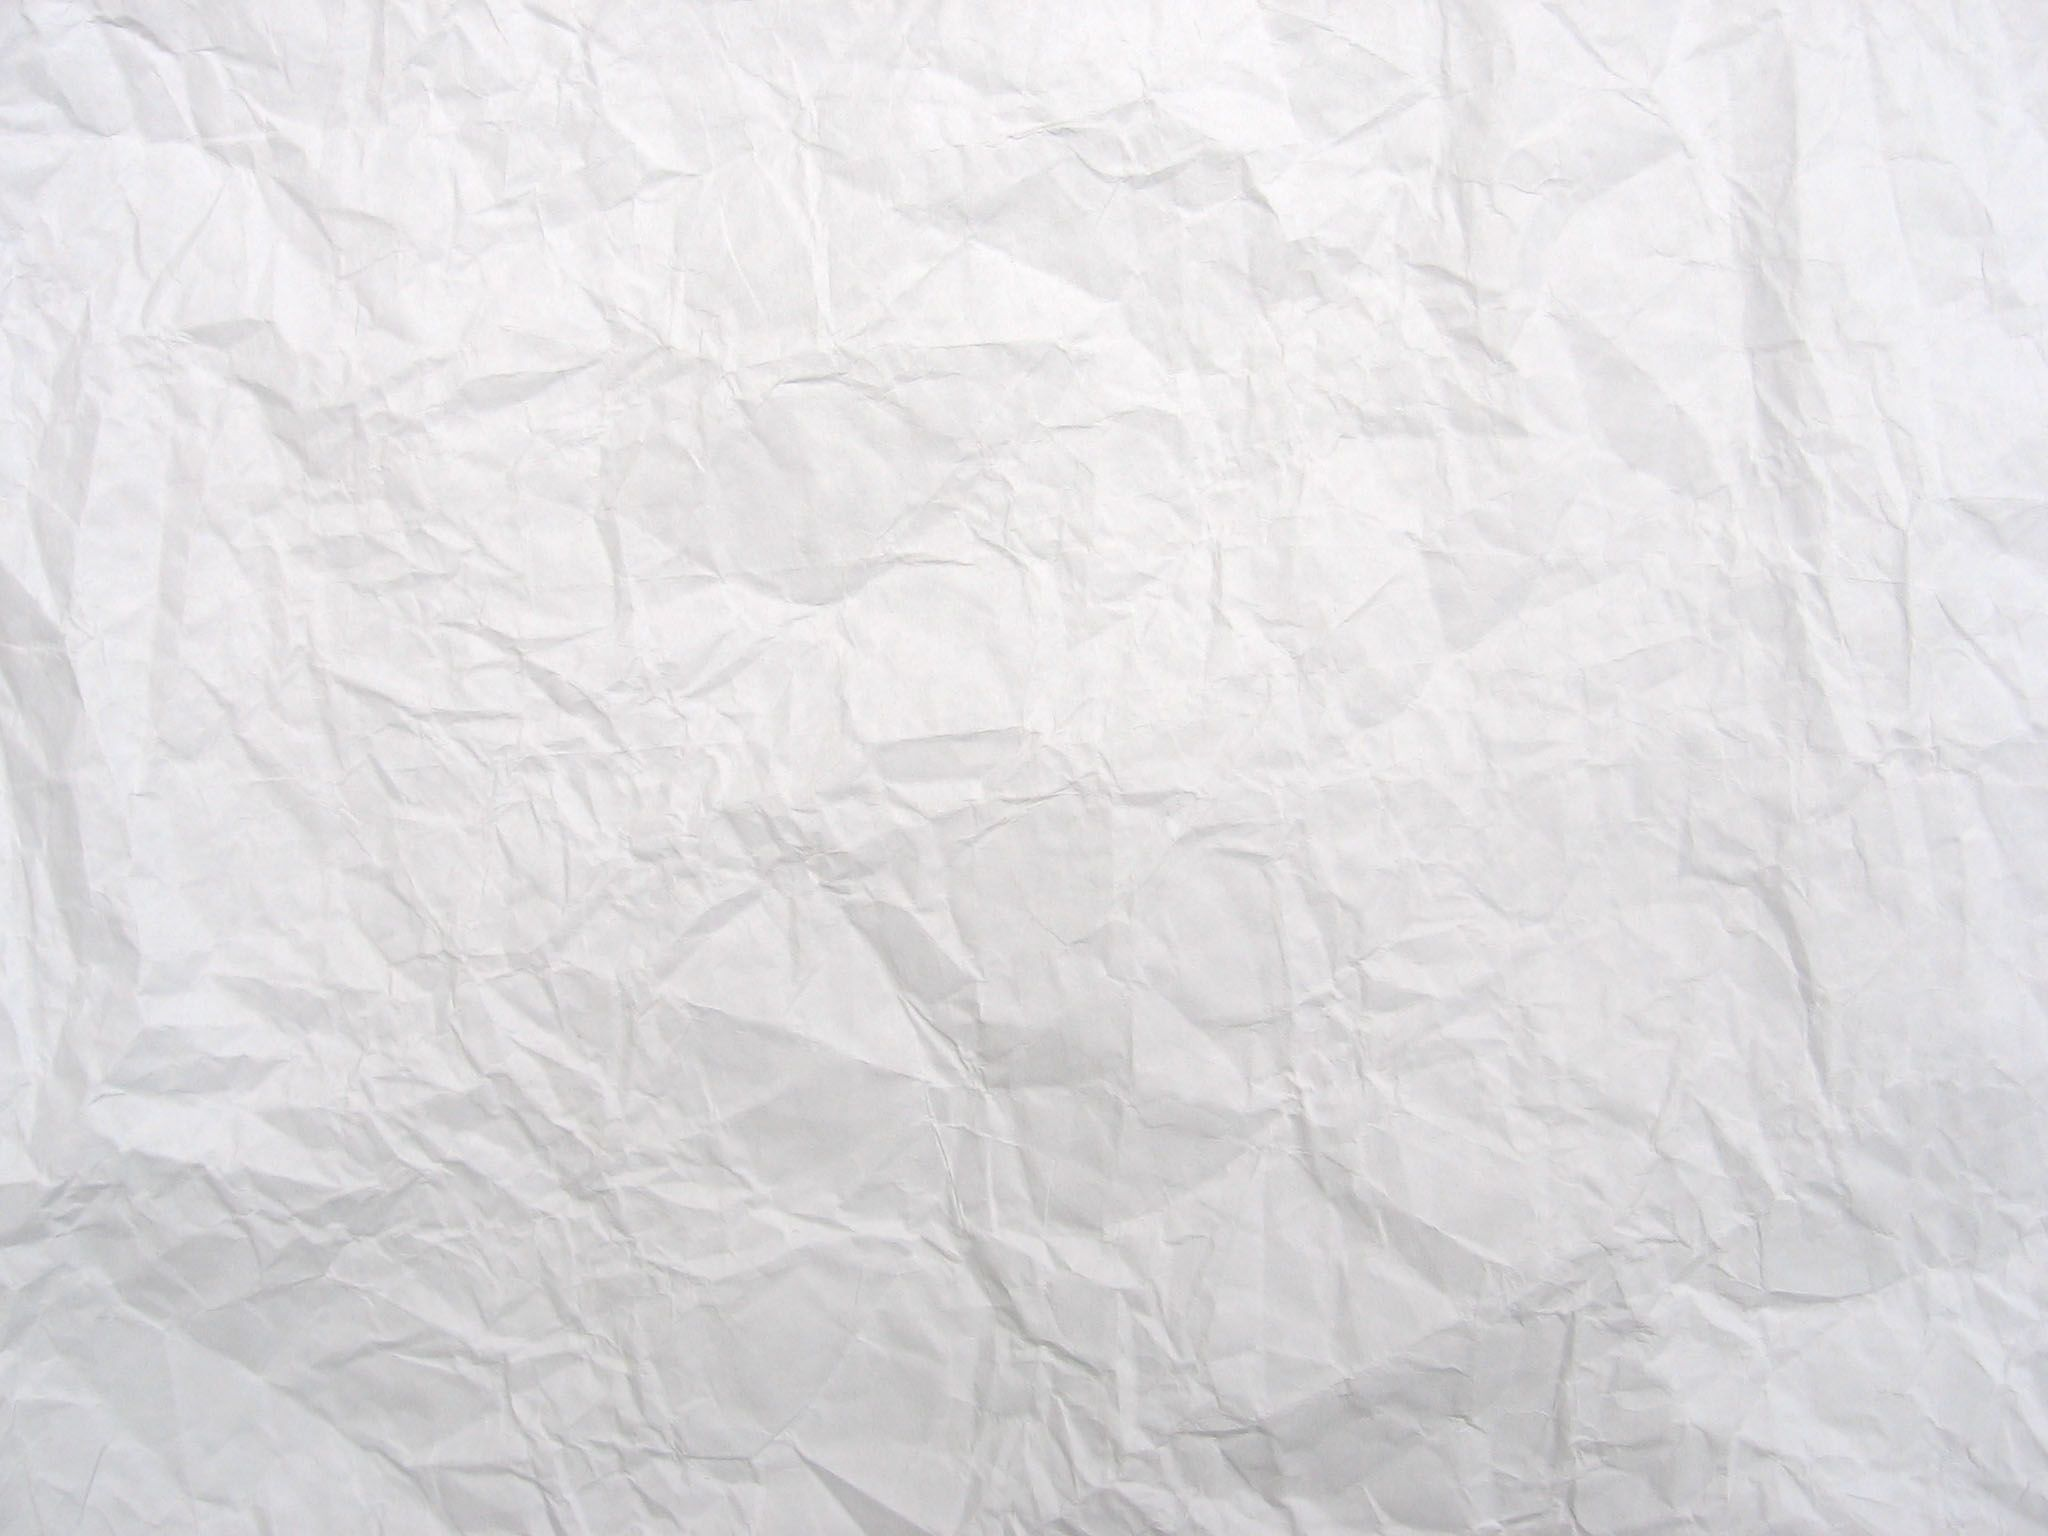 a paper structure, paper texture, the old rumpled paper to download ...